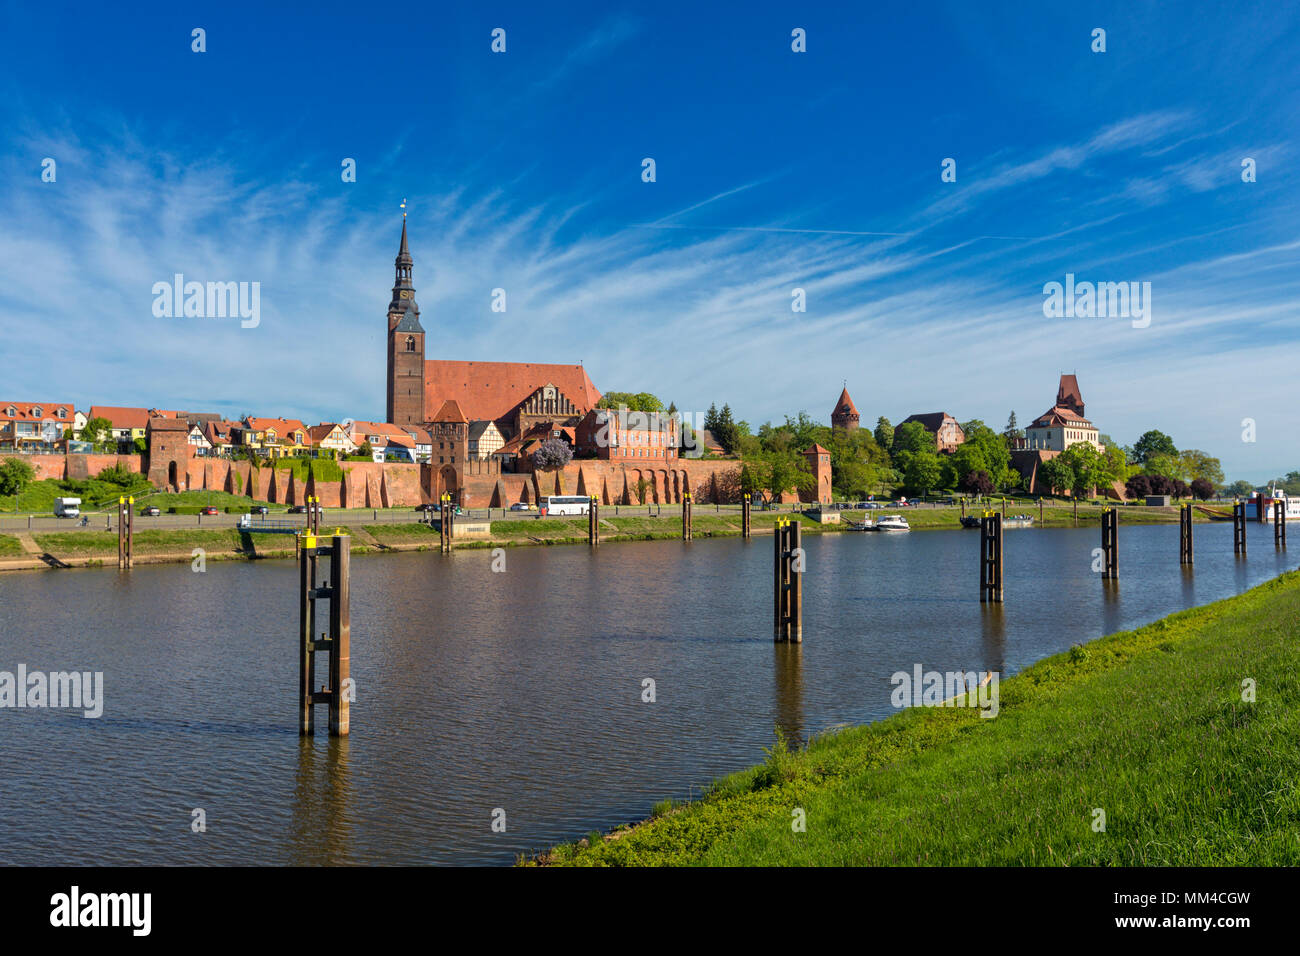 Tangermünde cityscape, view from Elbe river dike - Stock Image